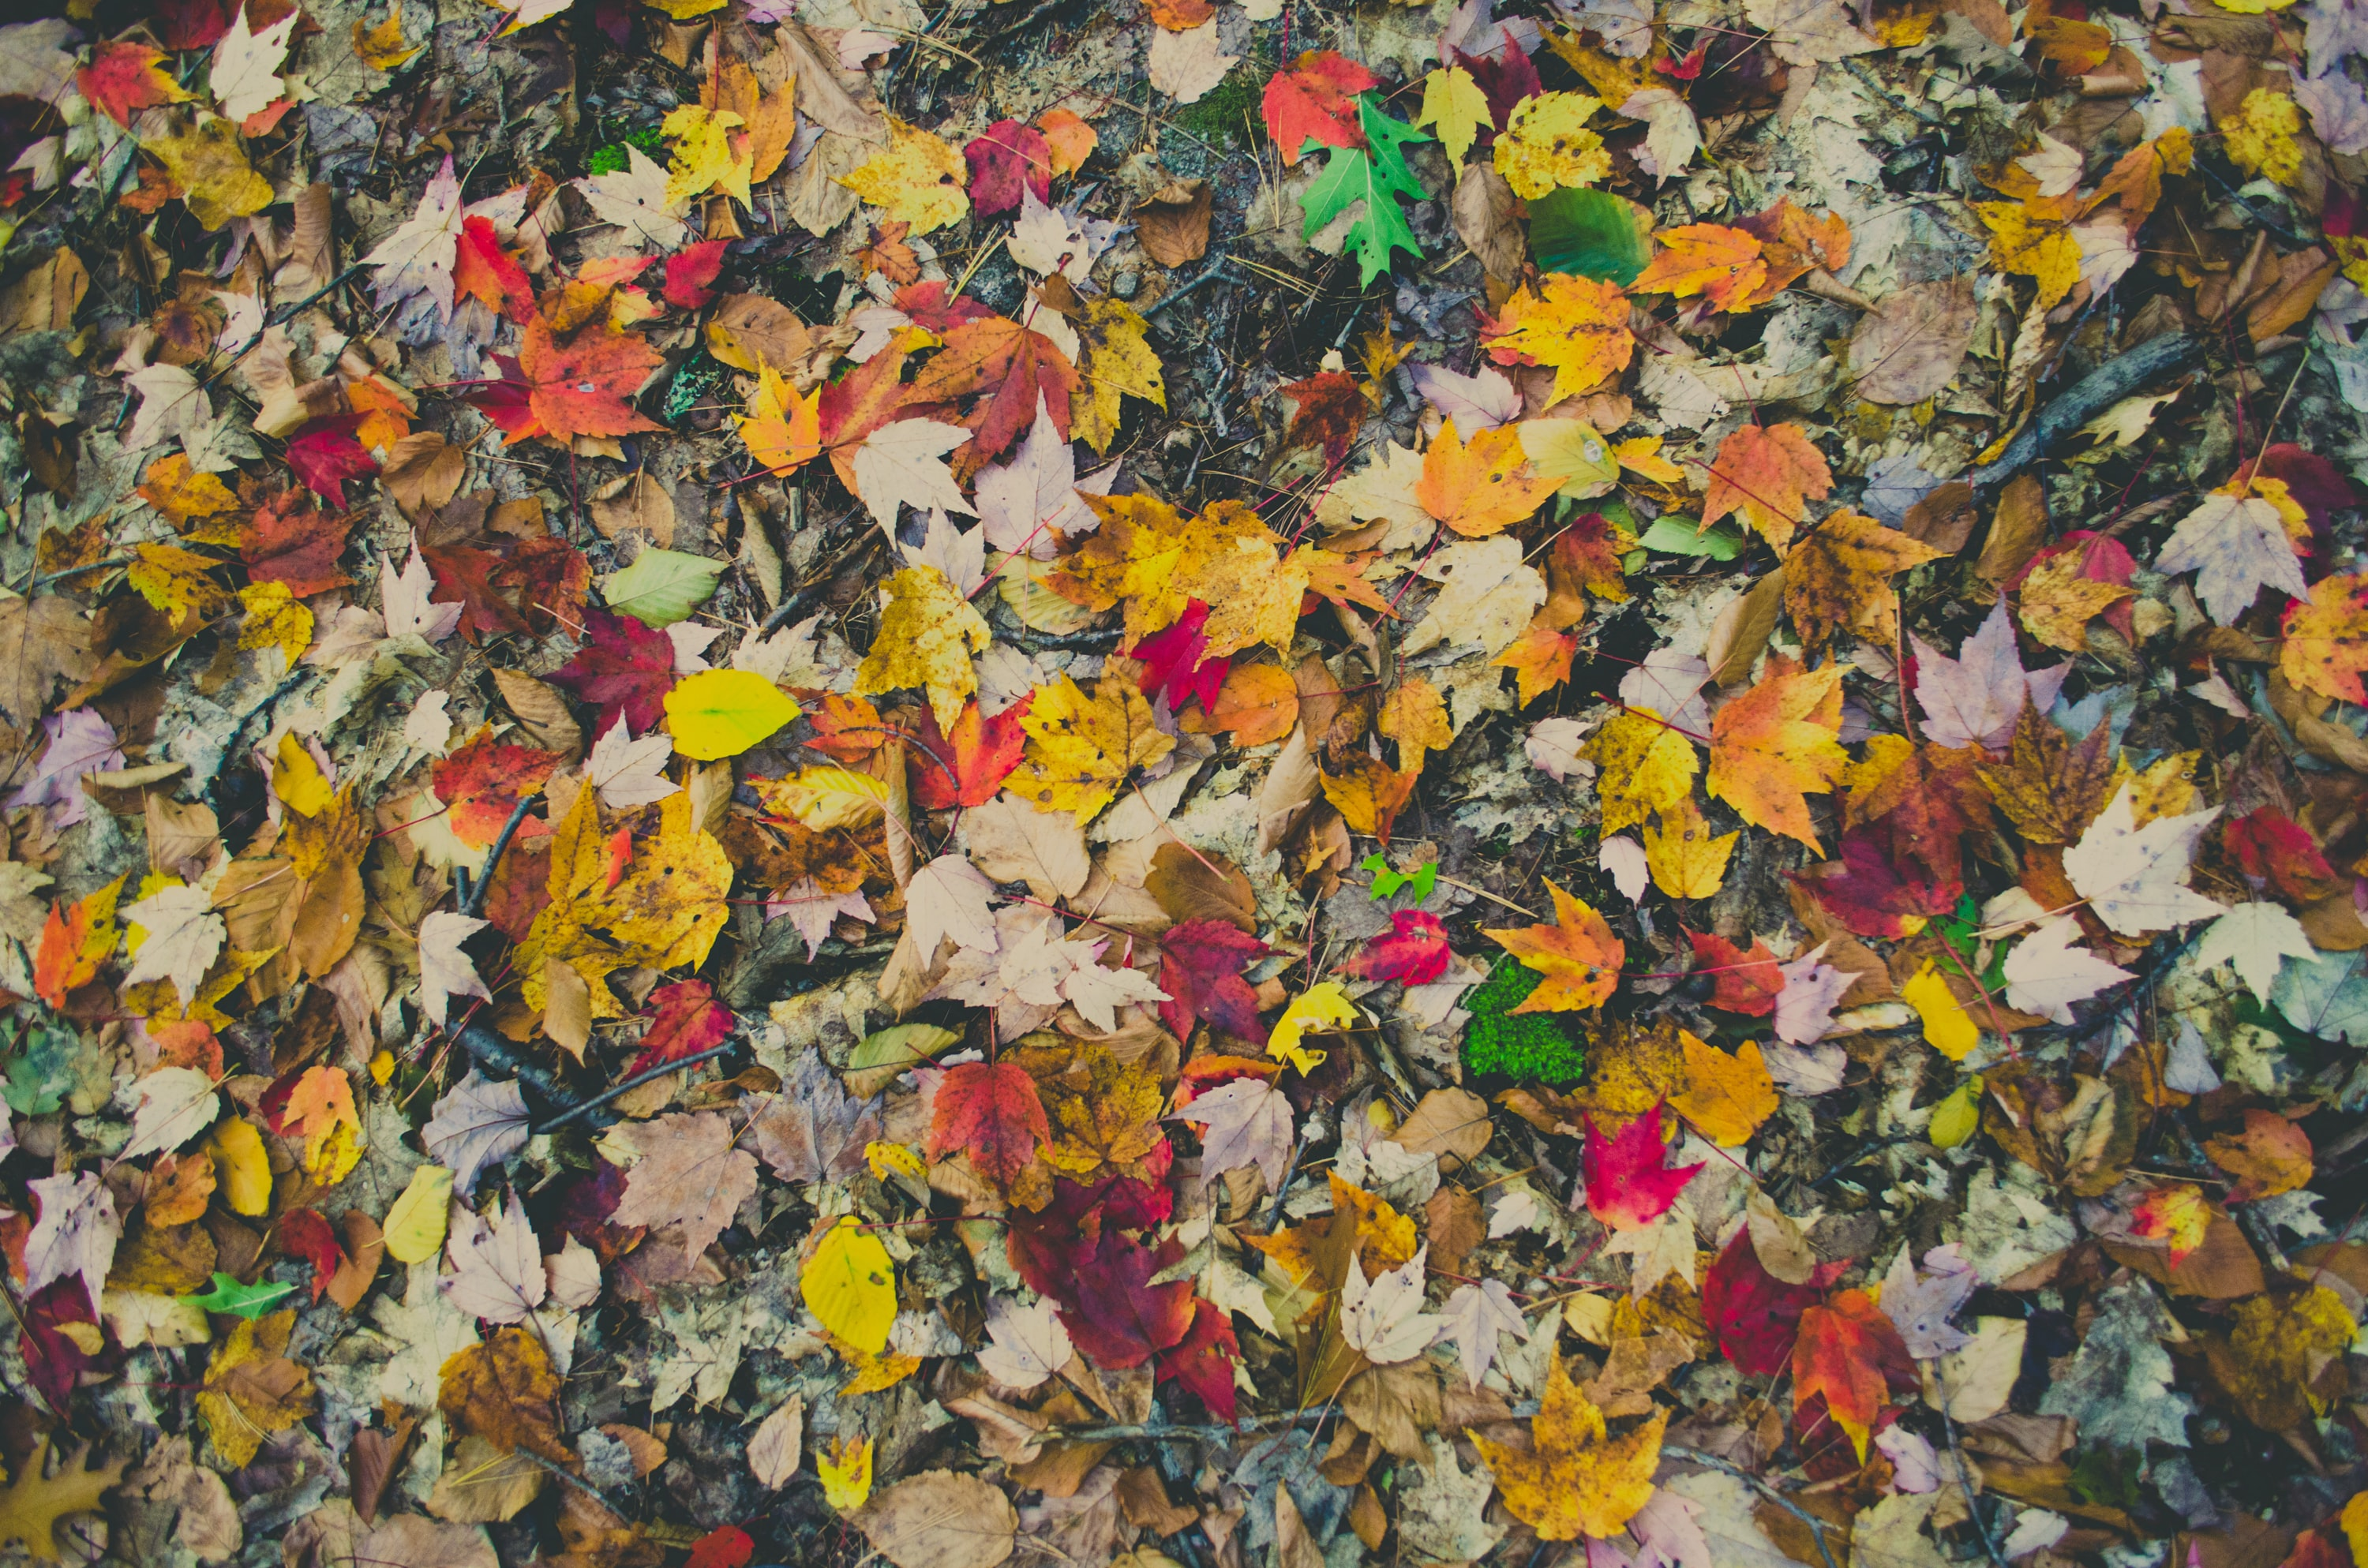 assorted-color leaves on ground